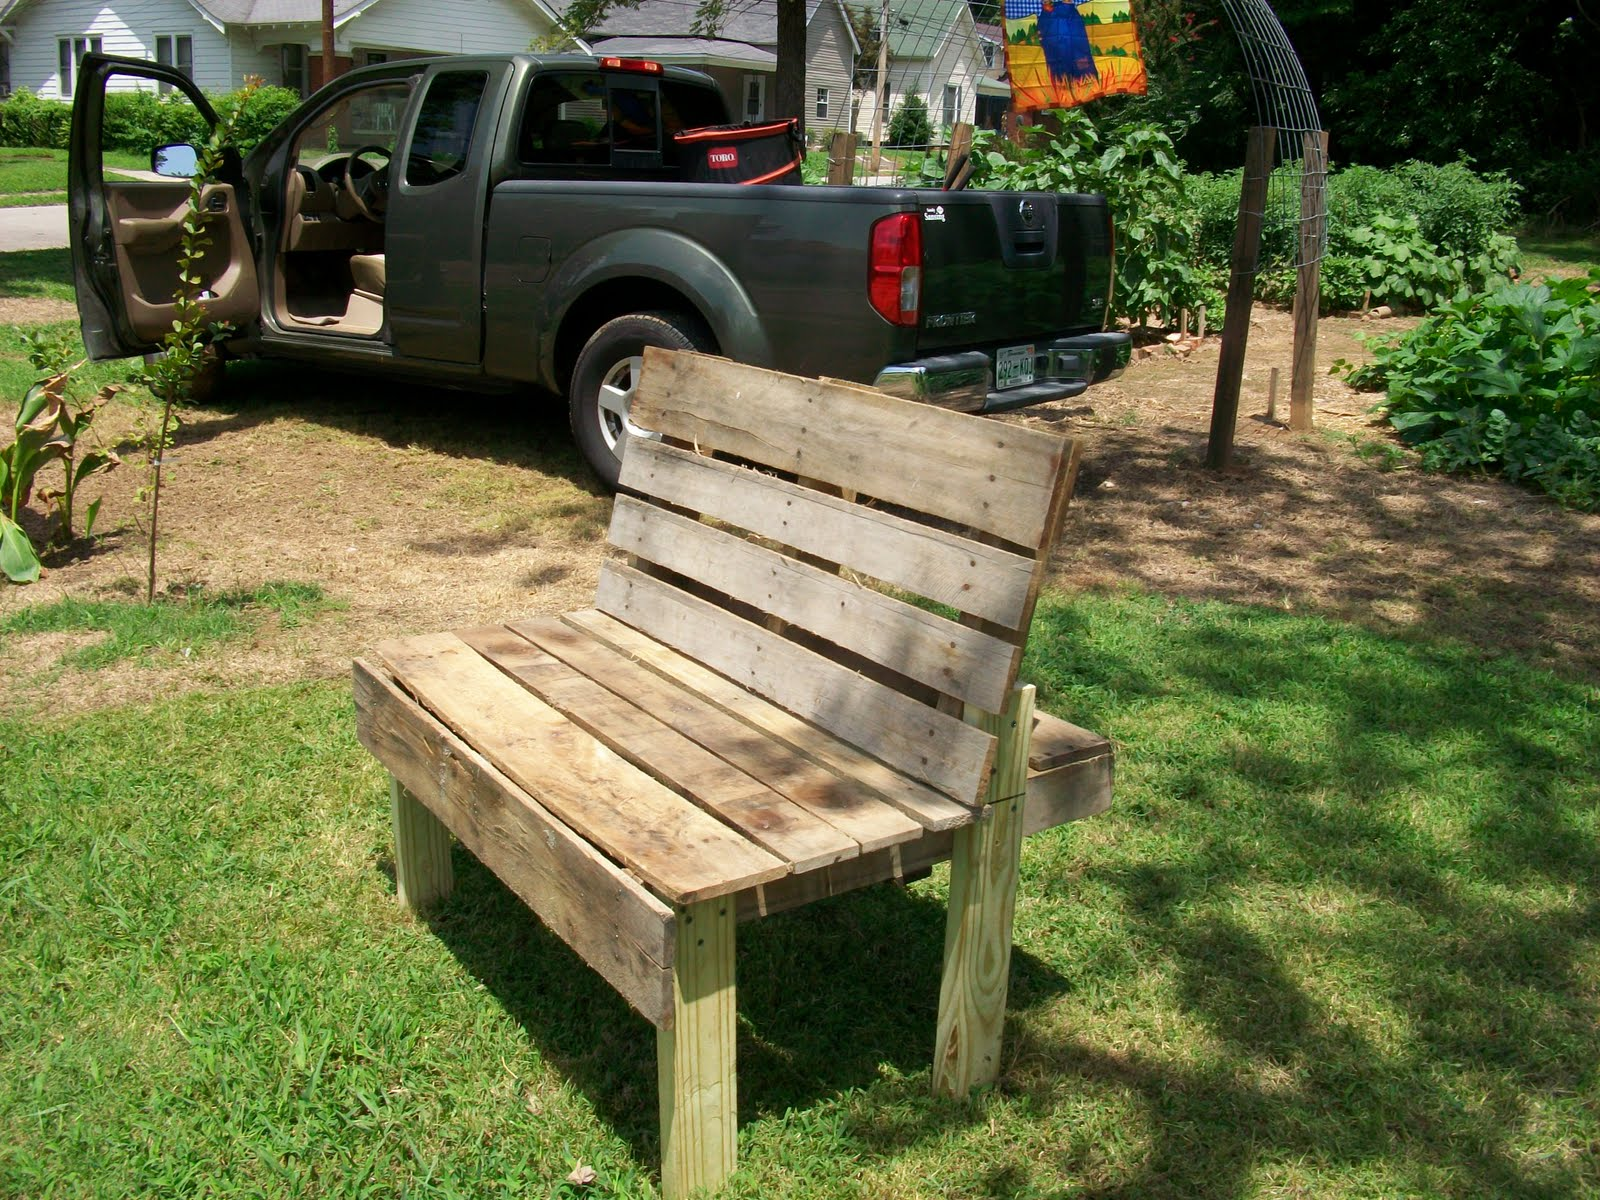 Garden daddy recycled pallet becomes garden bench for Banc en bois jardin